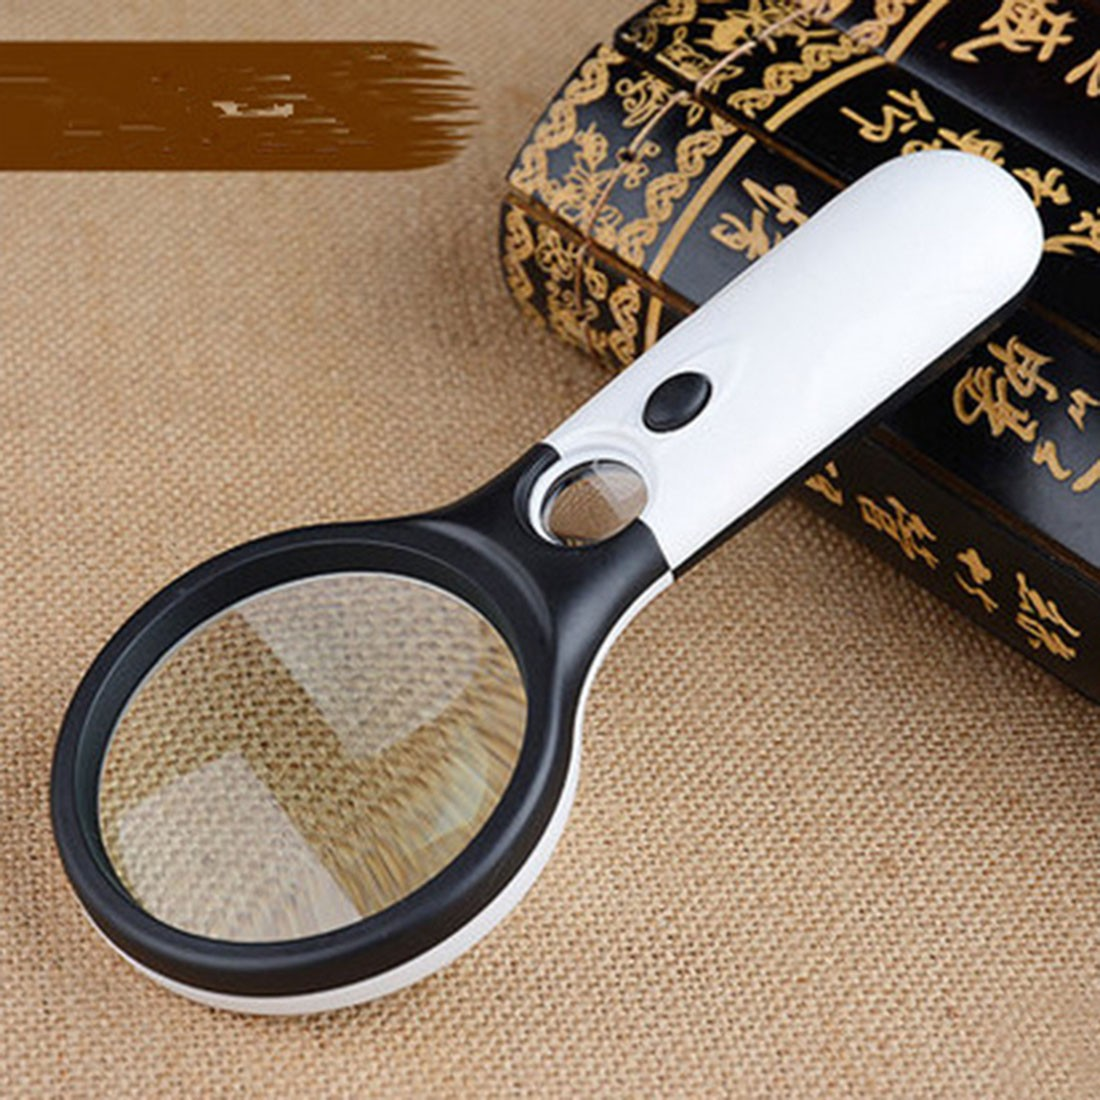 New Style Newest High Quality 3 Led Lights 3X 45X Handheld Reading Magnifier Lens Magnifier Jewelry Loupe Magnifying Glass new portable 45x magnifier magnifying glass with light detachable reading engraving jewelry glasses loupes